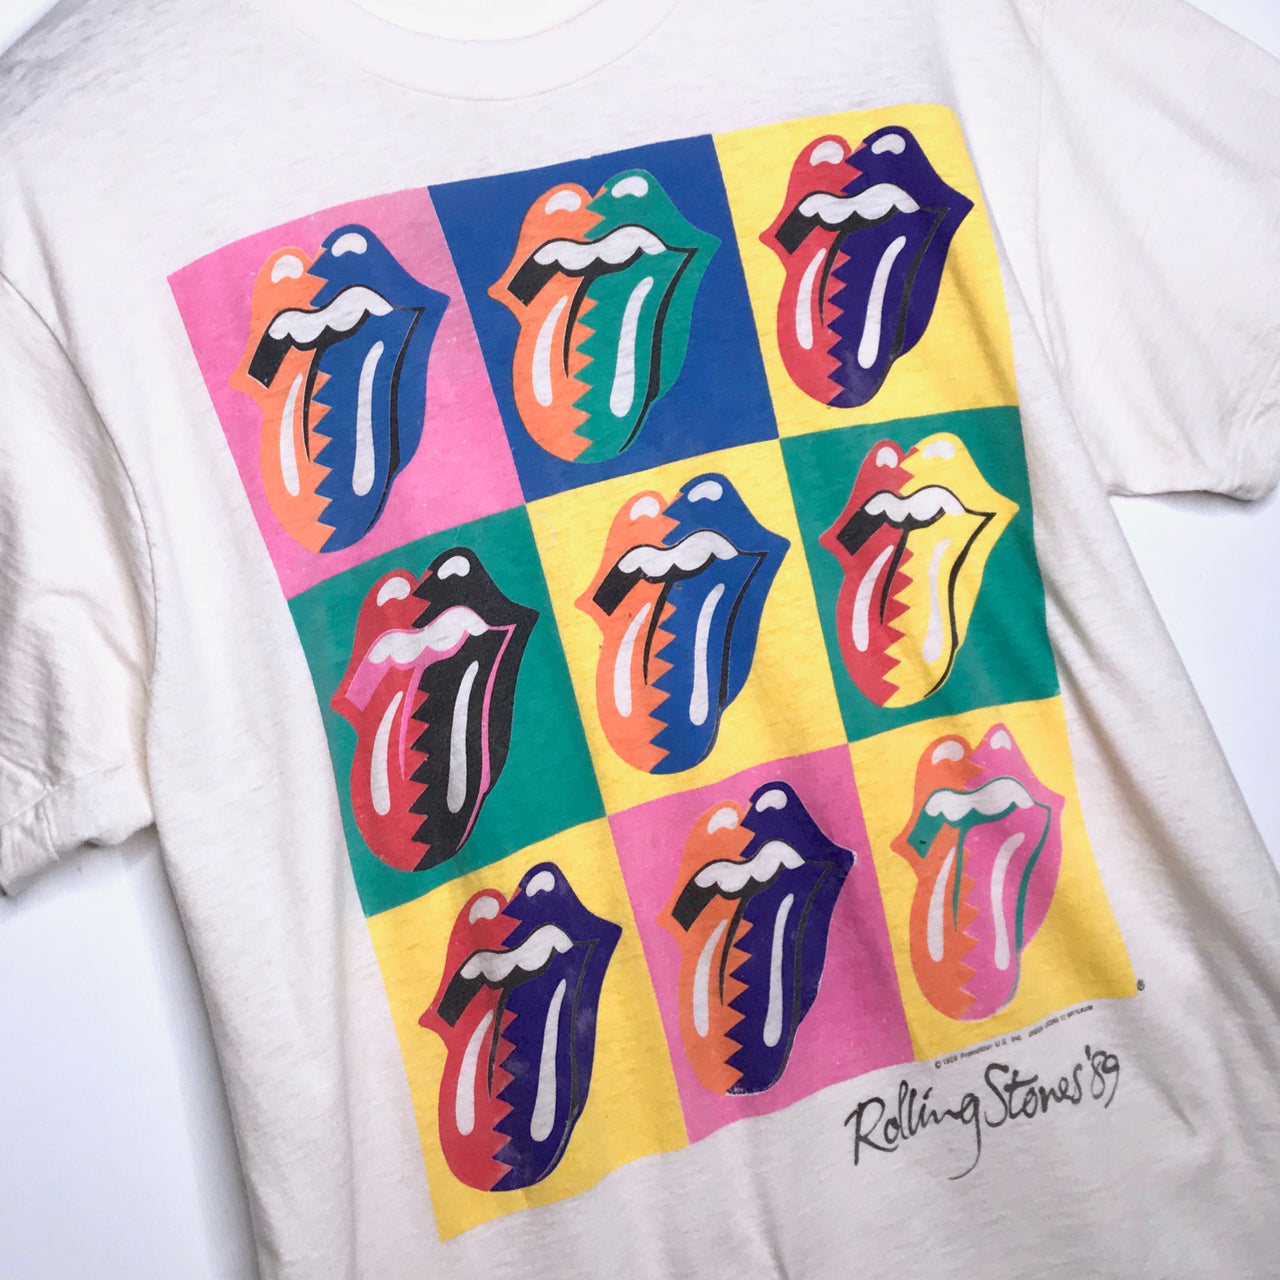 Rolling Stones 'Steel Wheels Tour' - 1989